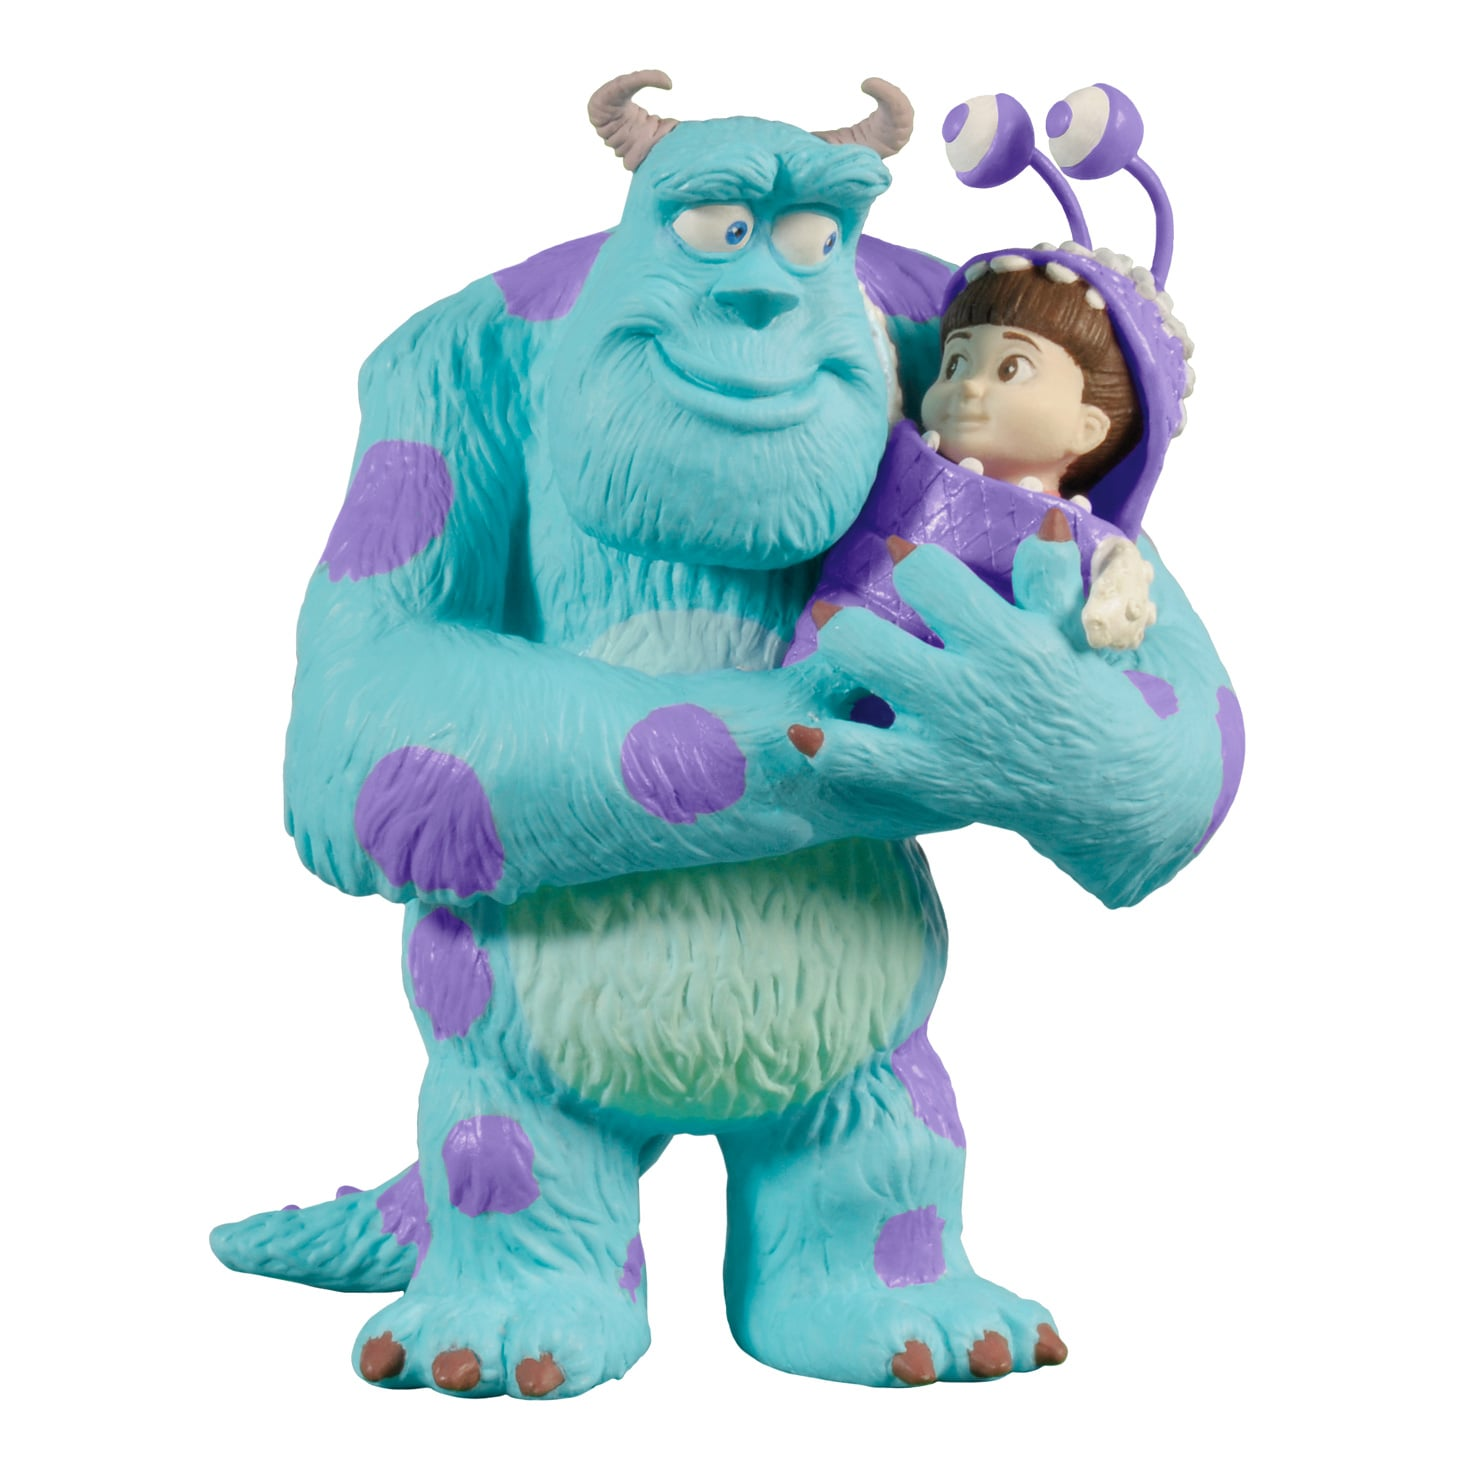 Boo And Sulley From Monsters Inc Decorate The Tree In Sci Fi Ornaments Popsugar Tech Photo 8